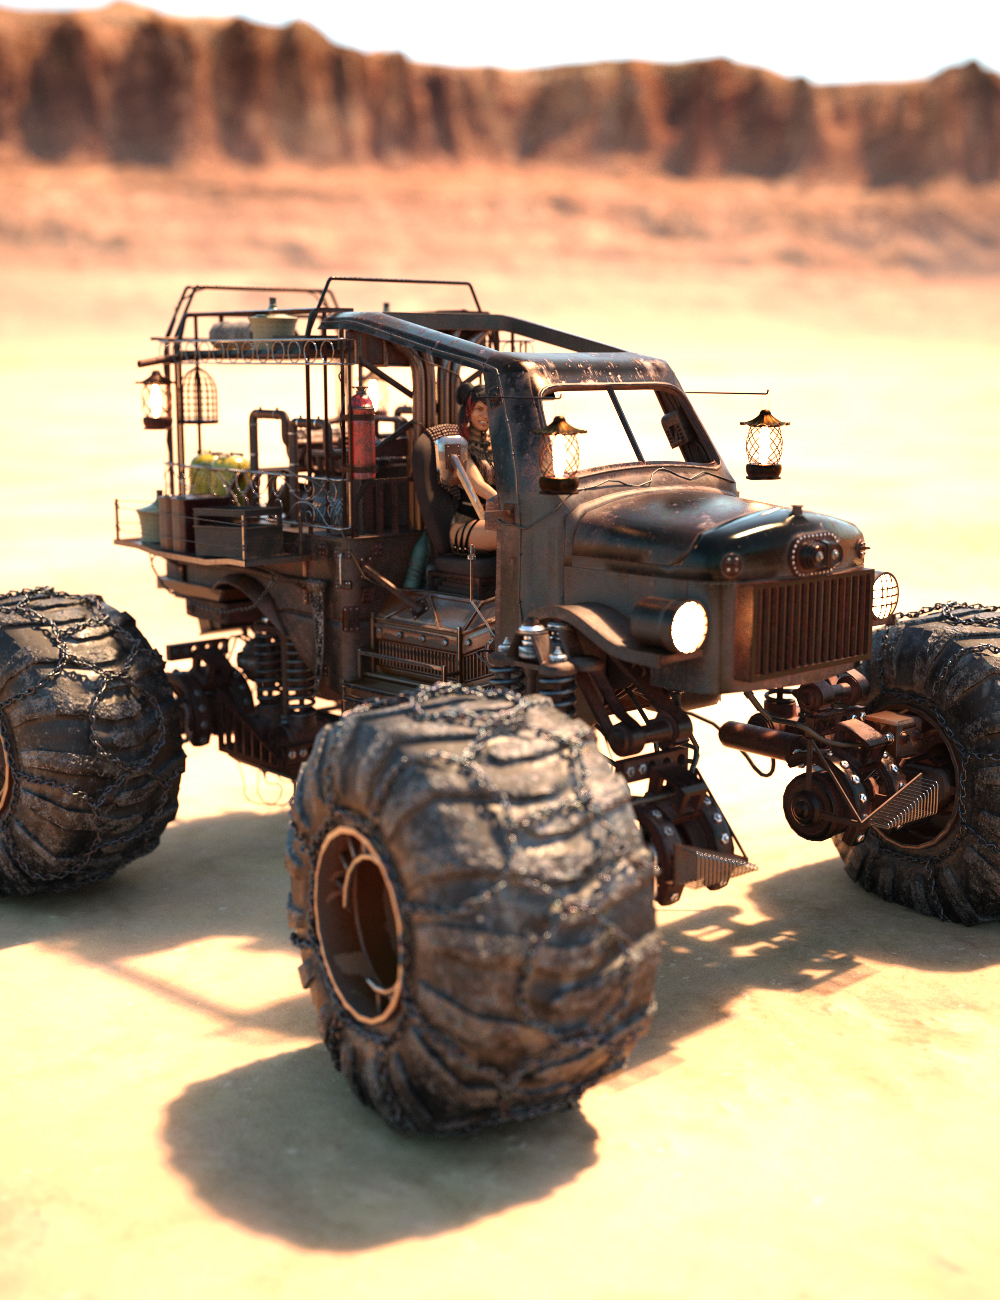 Wasteland Offroader by: Charlie, 3D Models by Daz 3D